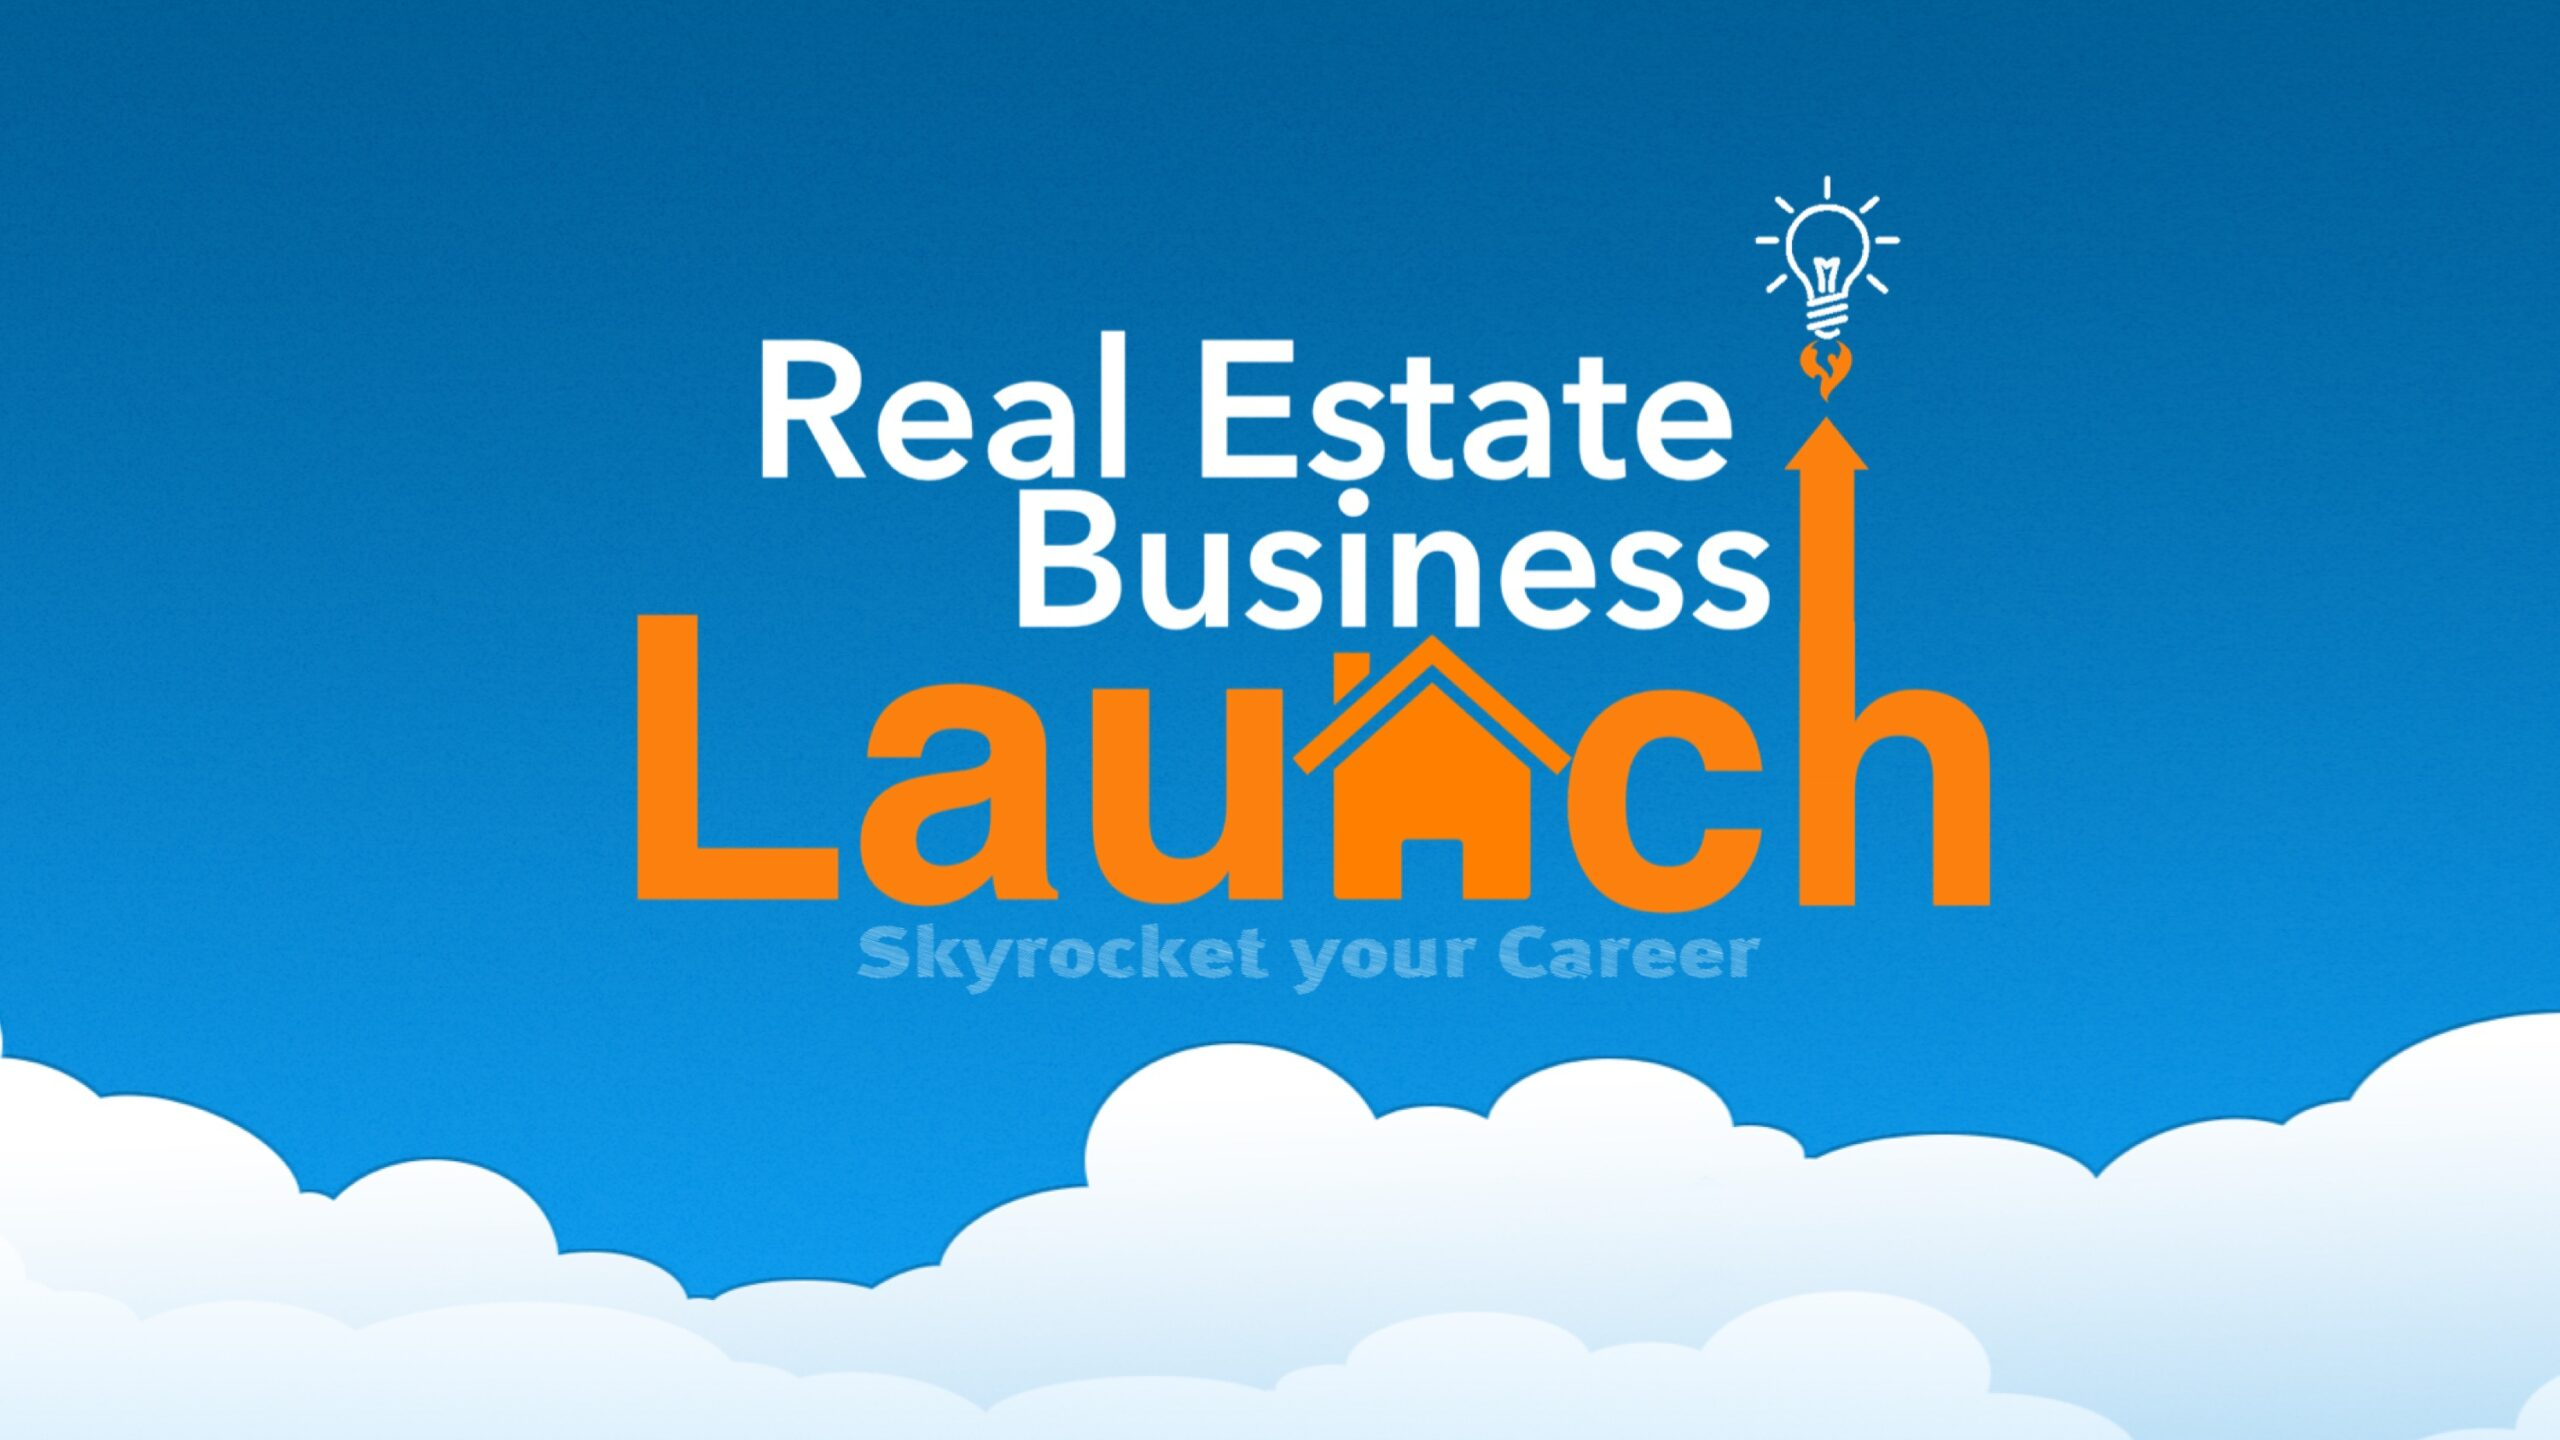 Manfred Real Estate Business Launch